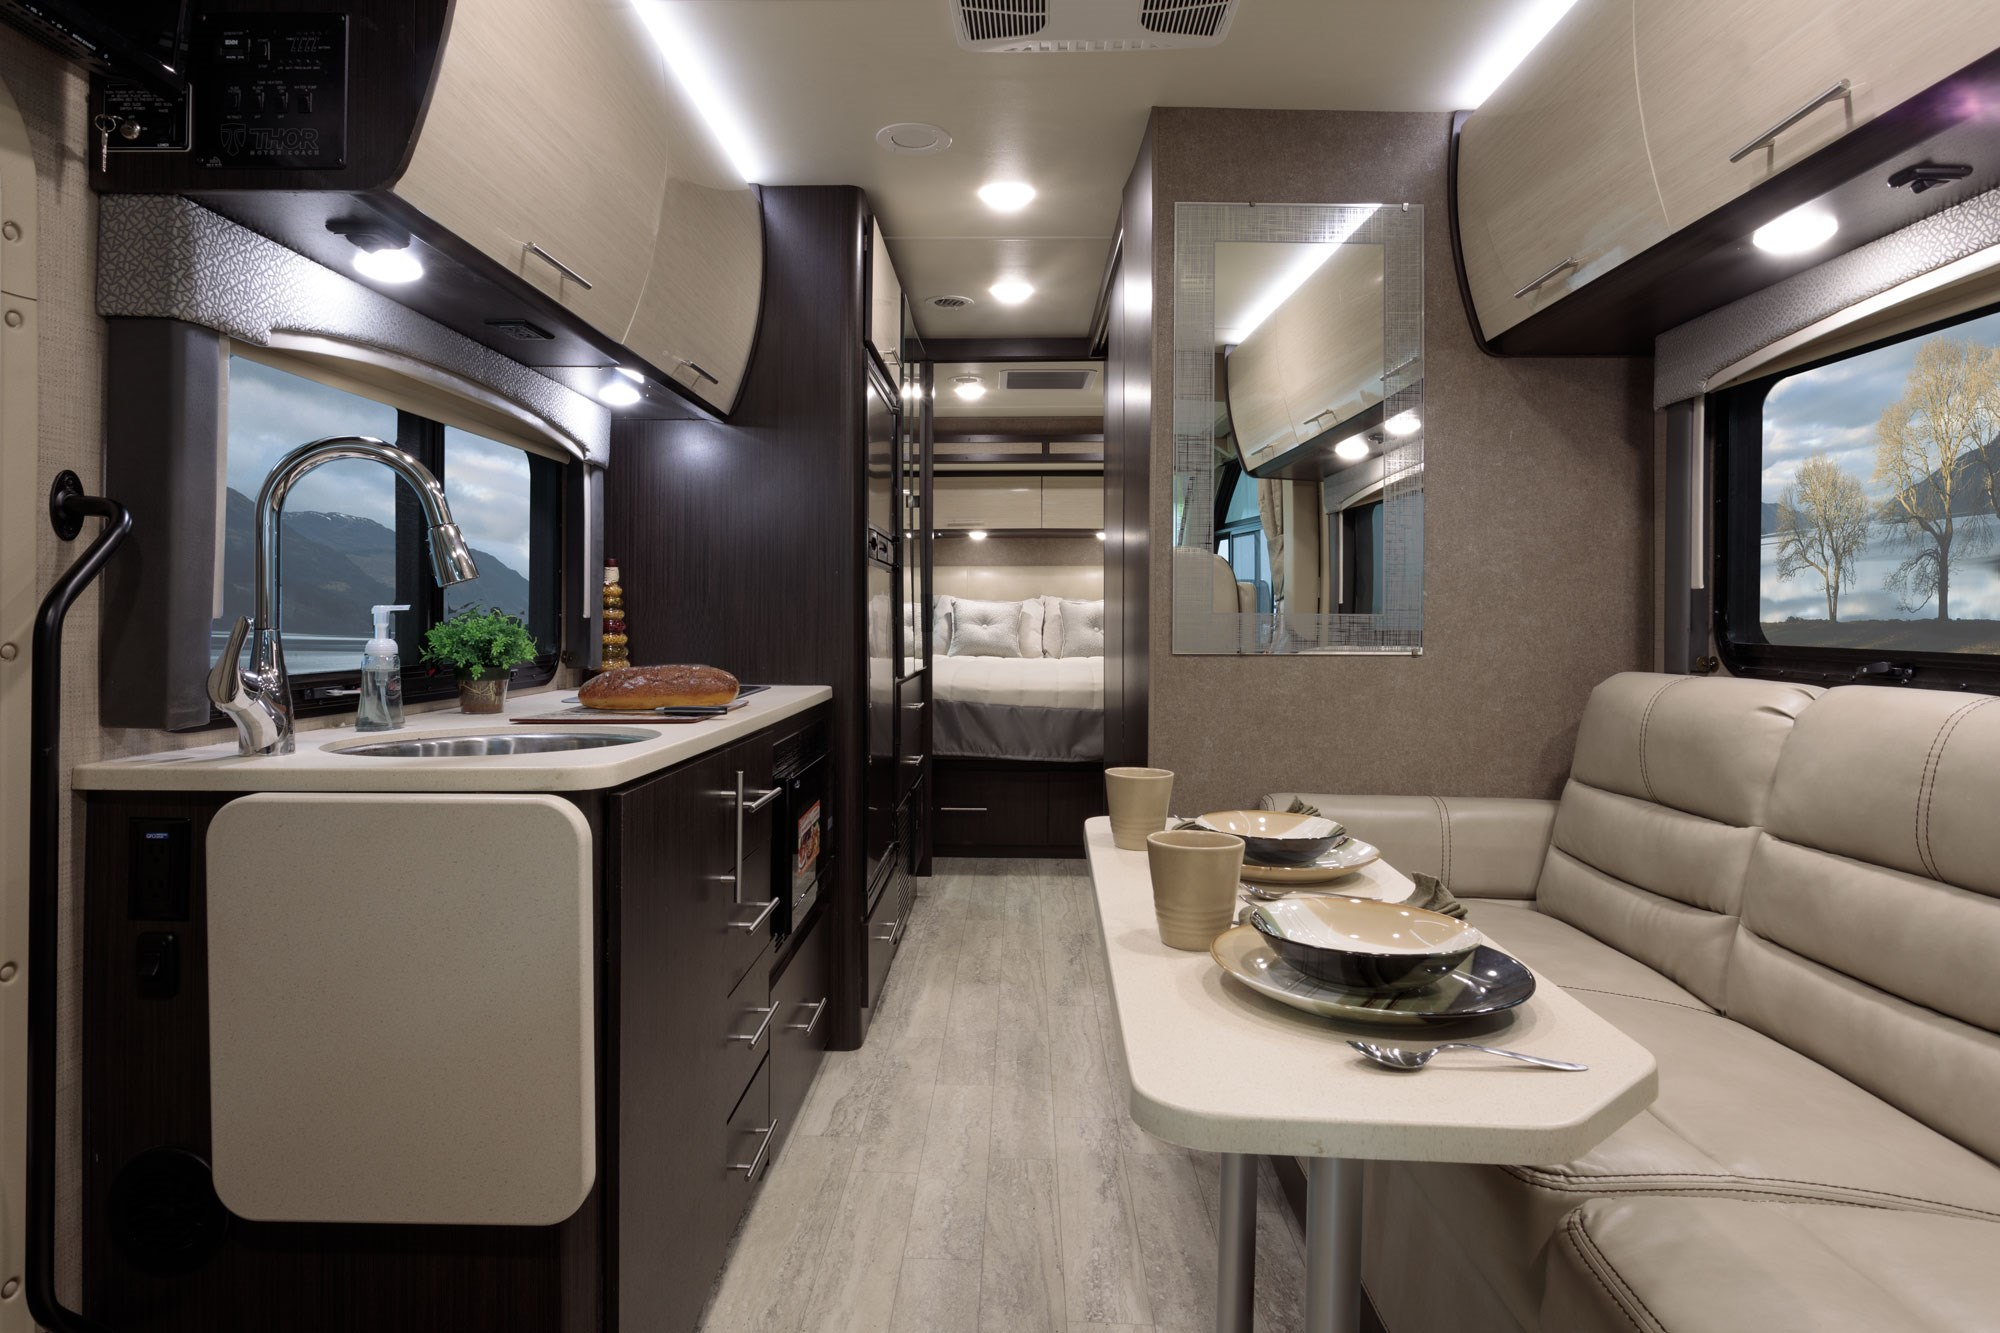 plans to build a sofa bed best canada 2016 vegas ruv class motorhomes | thor motor coach